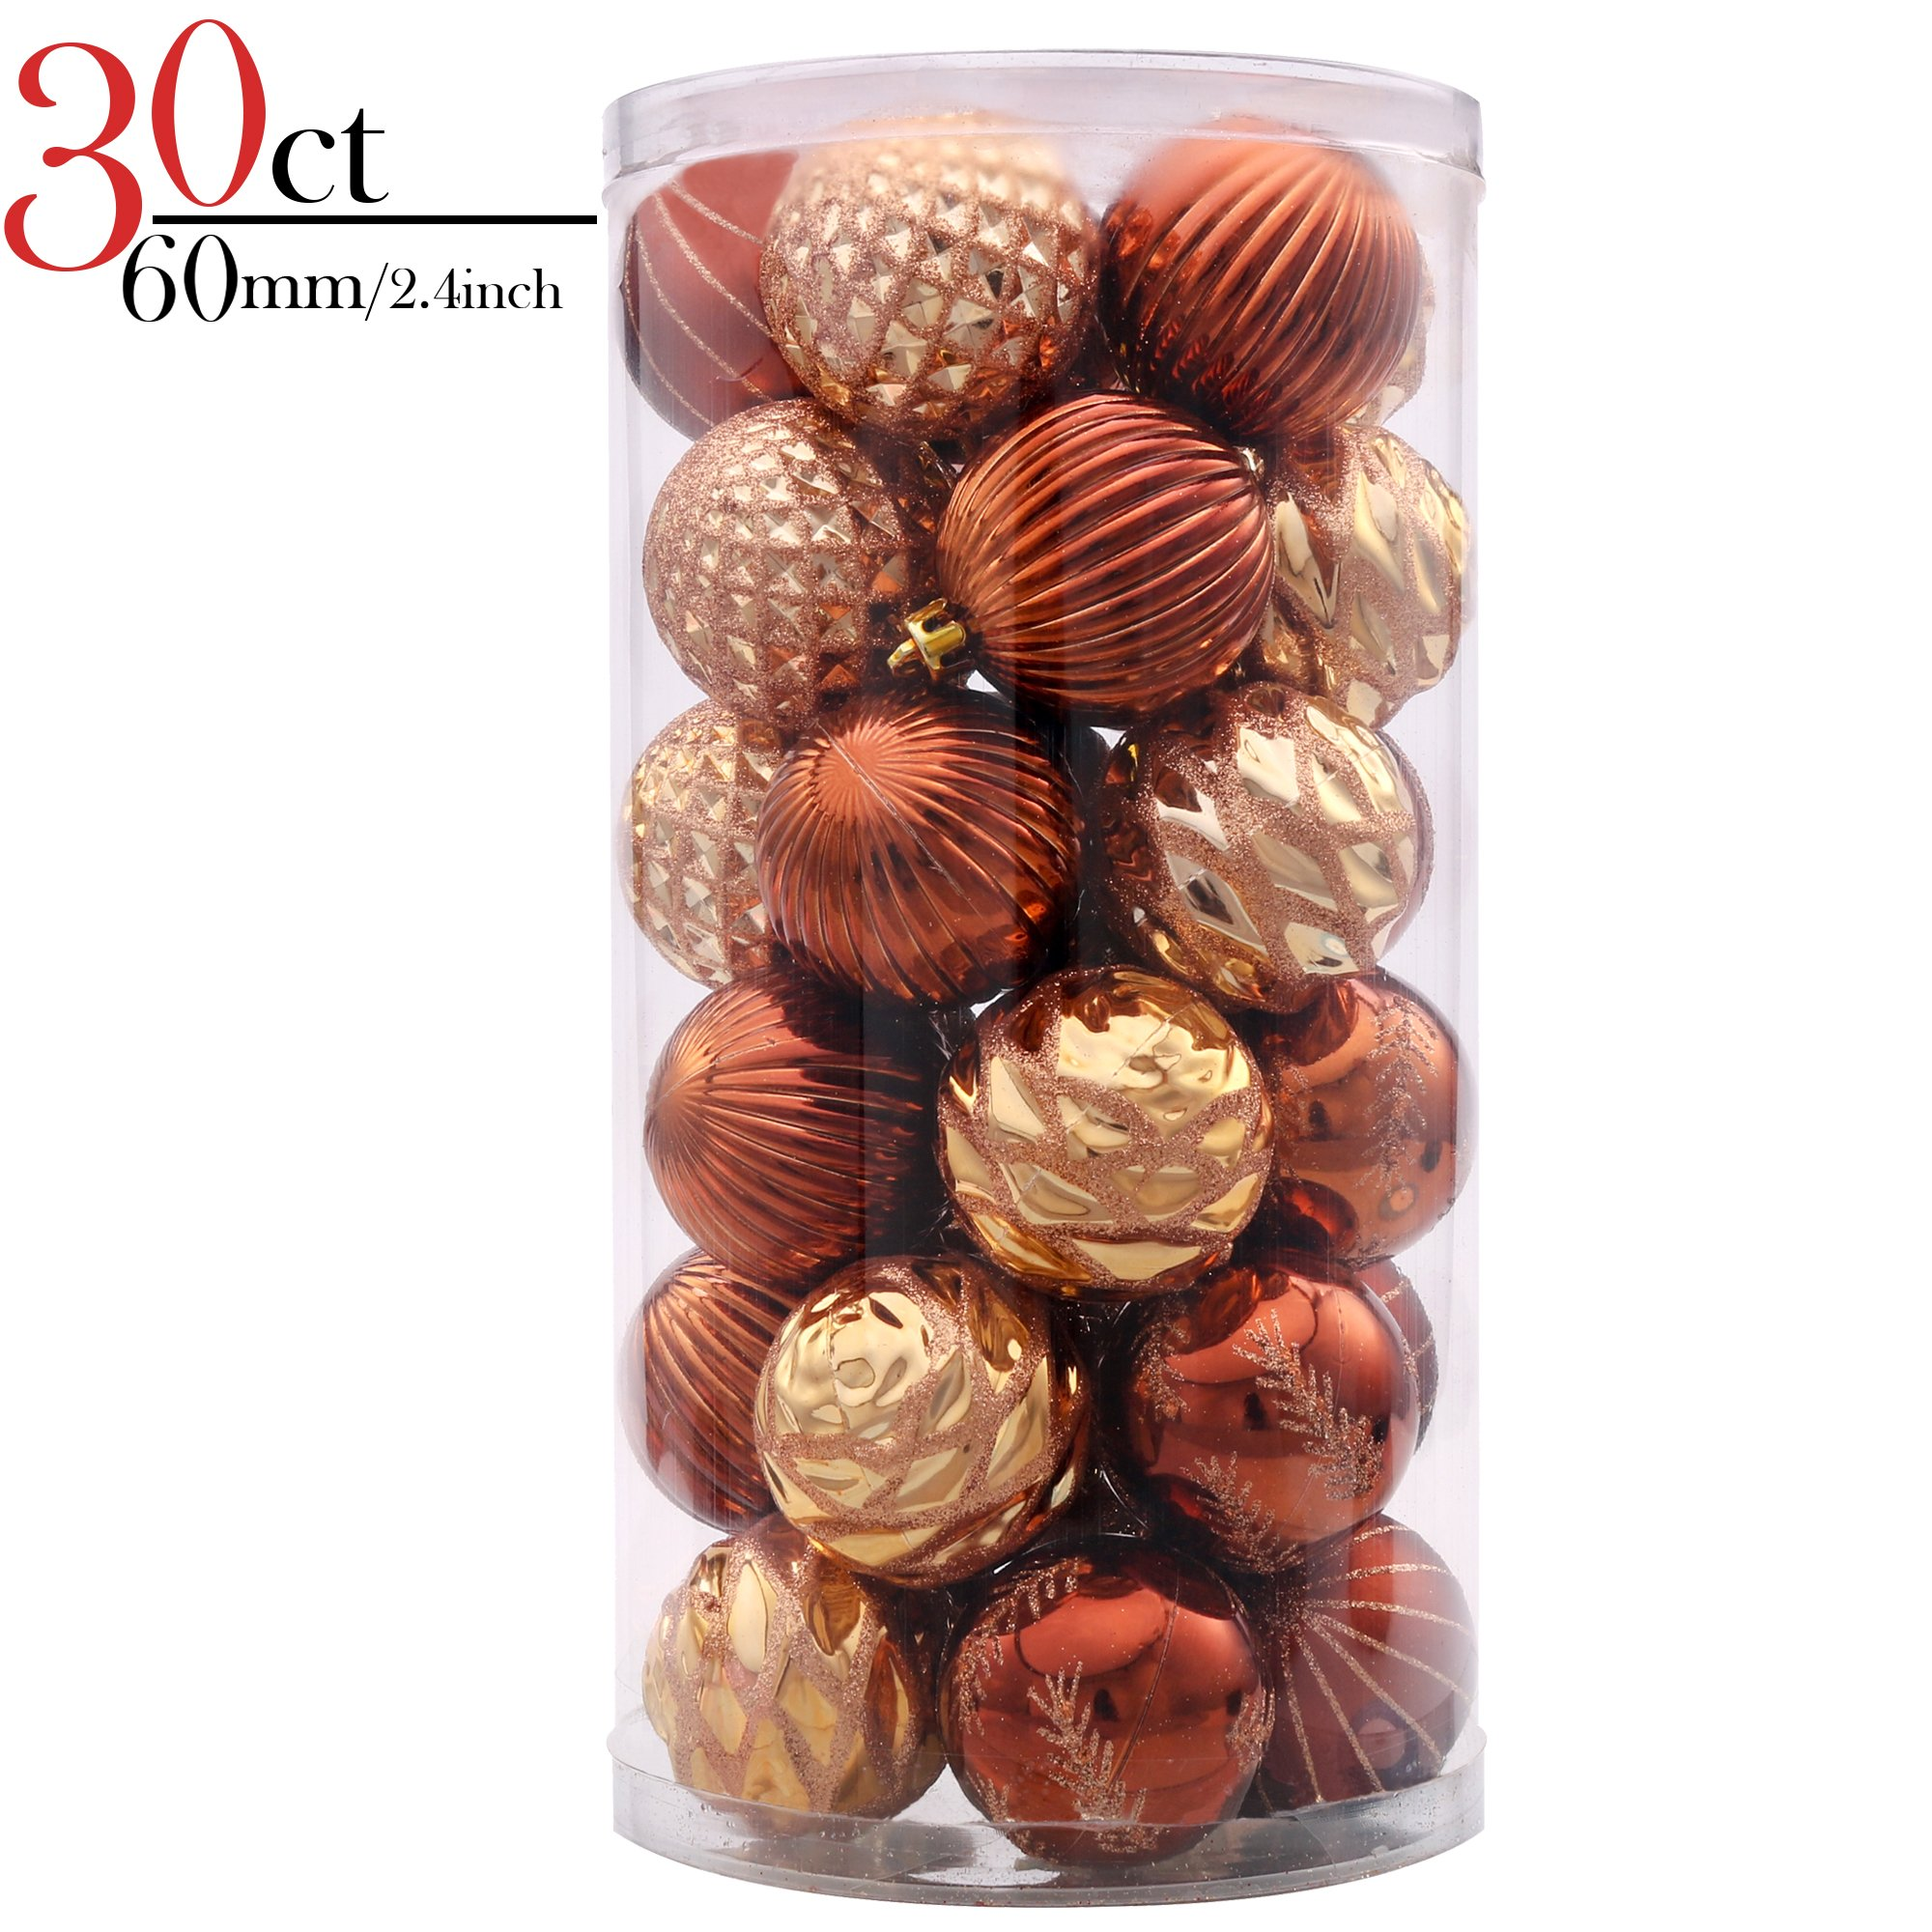 V&M VALERY MADELYN 30ct Shatterproof Christmas Ball Ornaments Decorations Woodland Gold, 2.36inch/6CM, 30 Metal Hooks Included, Themed with Tree Skirt(Not Included)